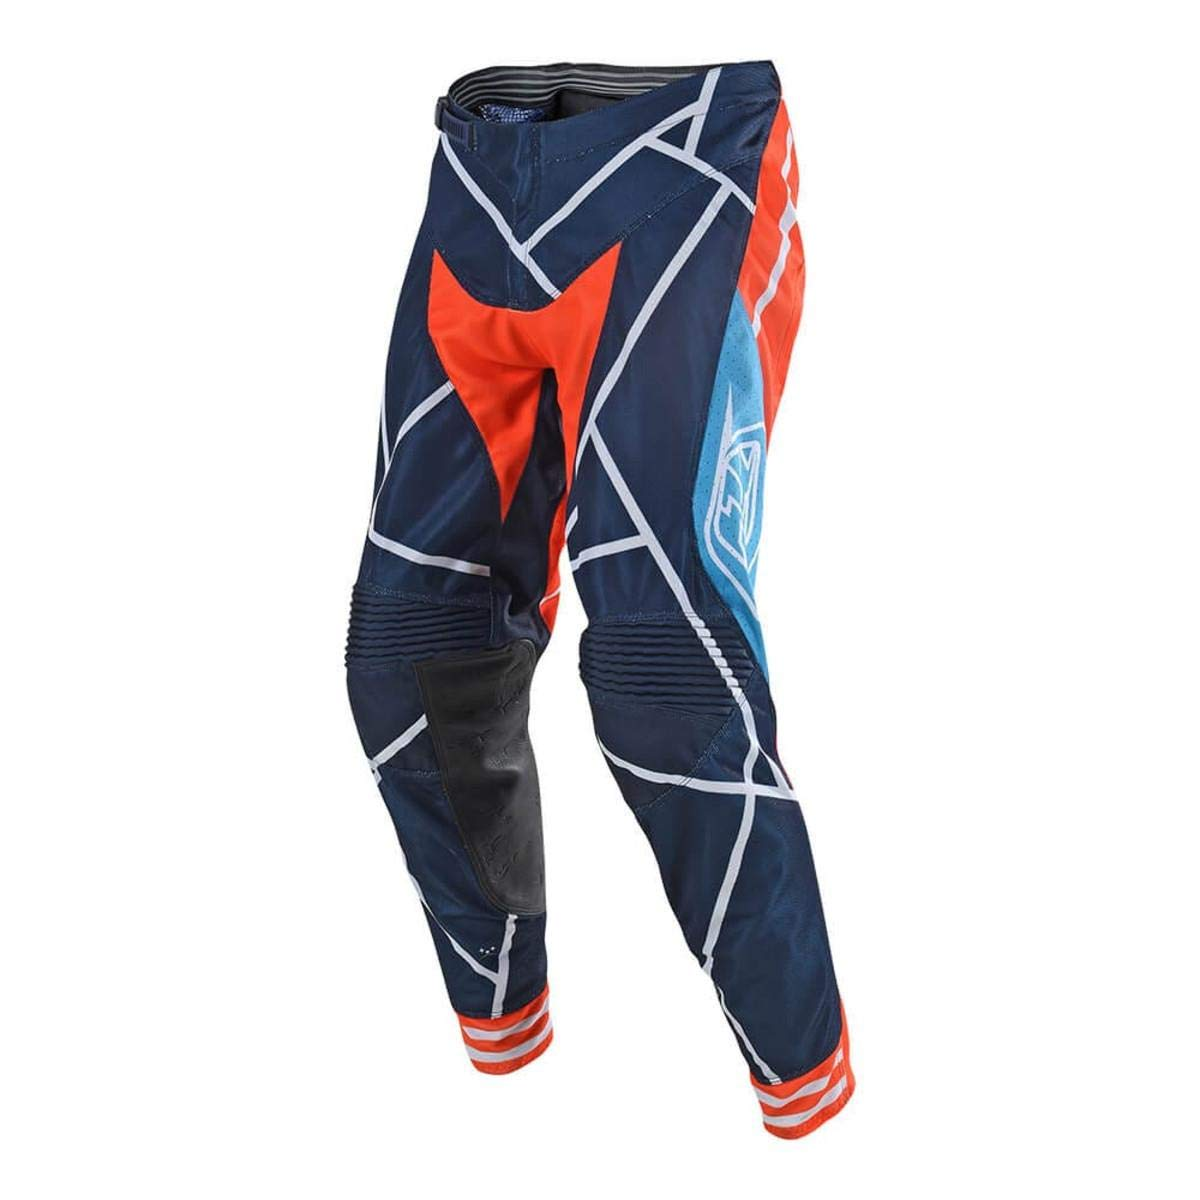 Troy Lee Designs Pantalon de Moto Se Air Pant Metric Toute lann/ée Hommes Cross//Offroad